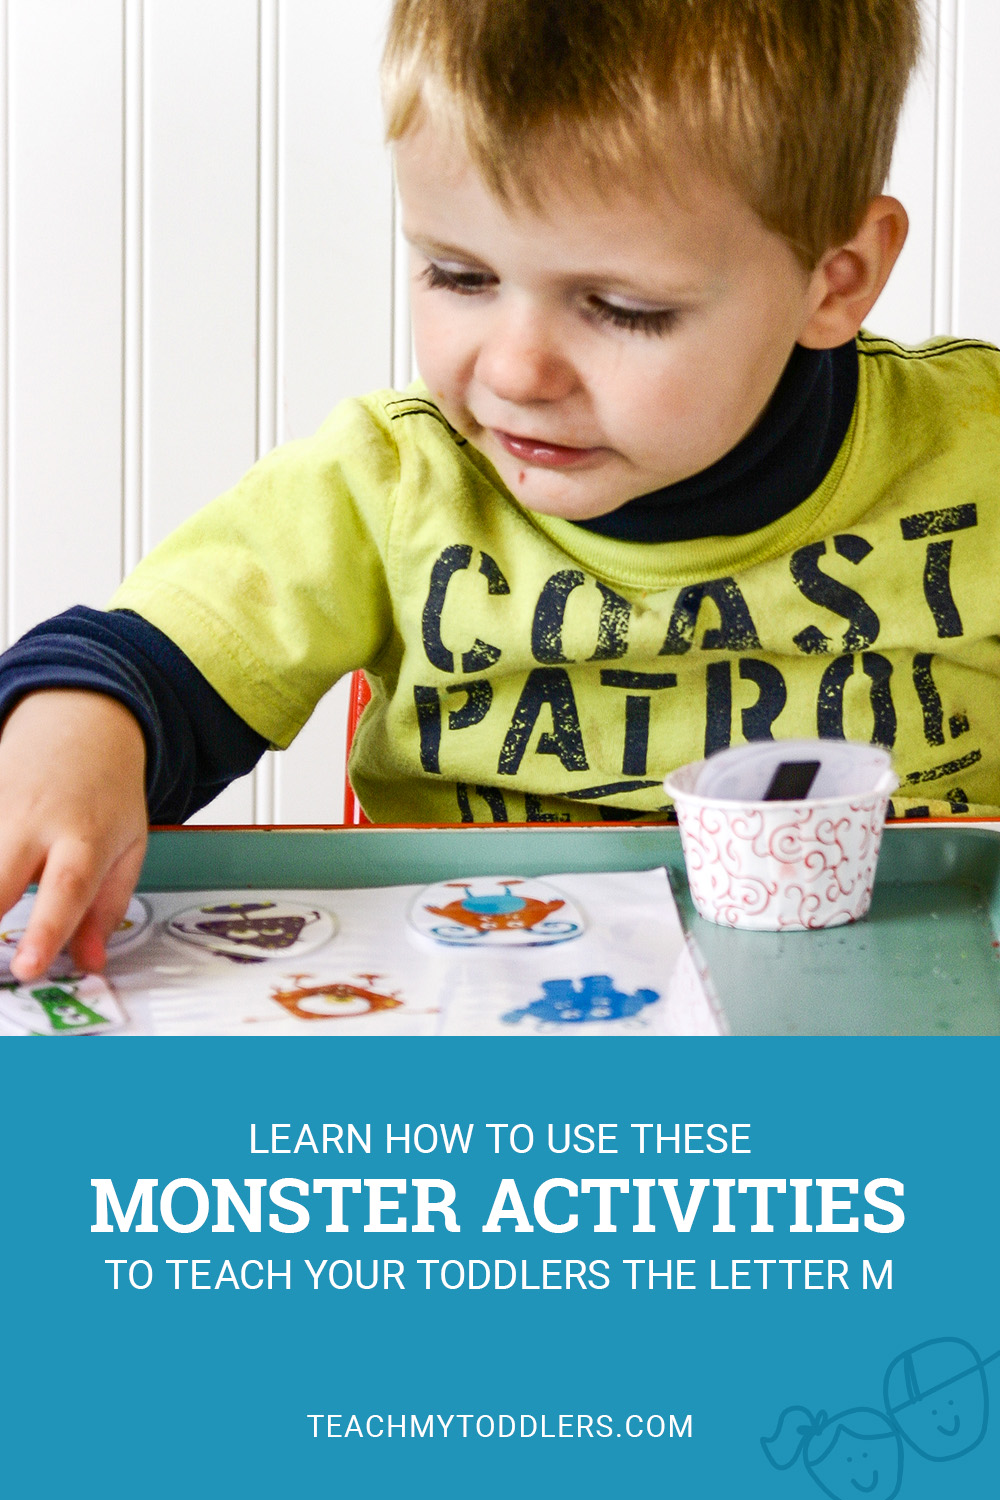 Learn how to use these monster activities to teach your toddlers the letter m